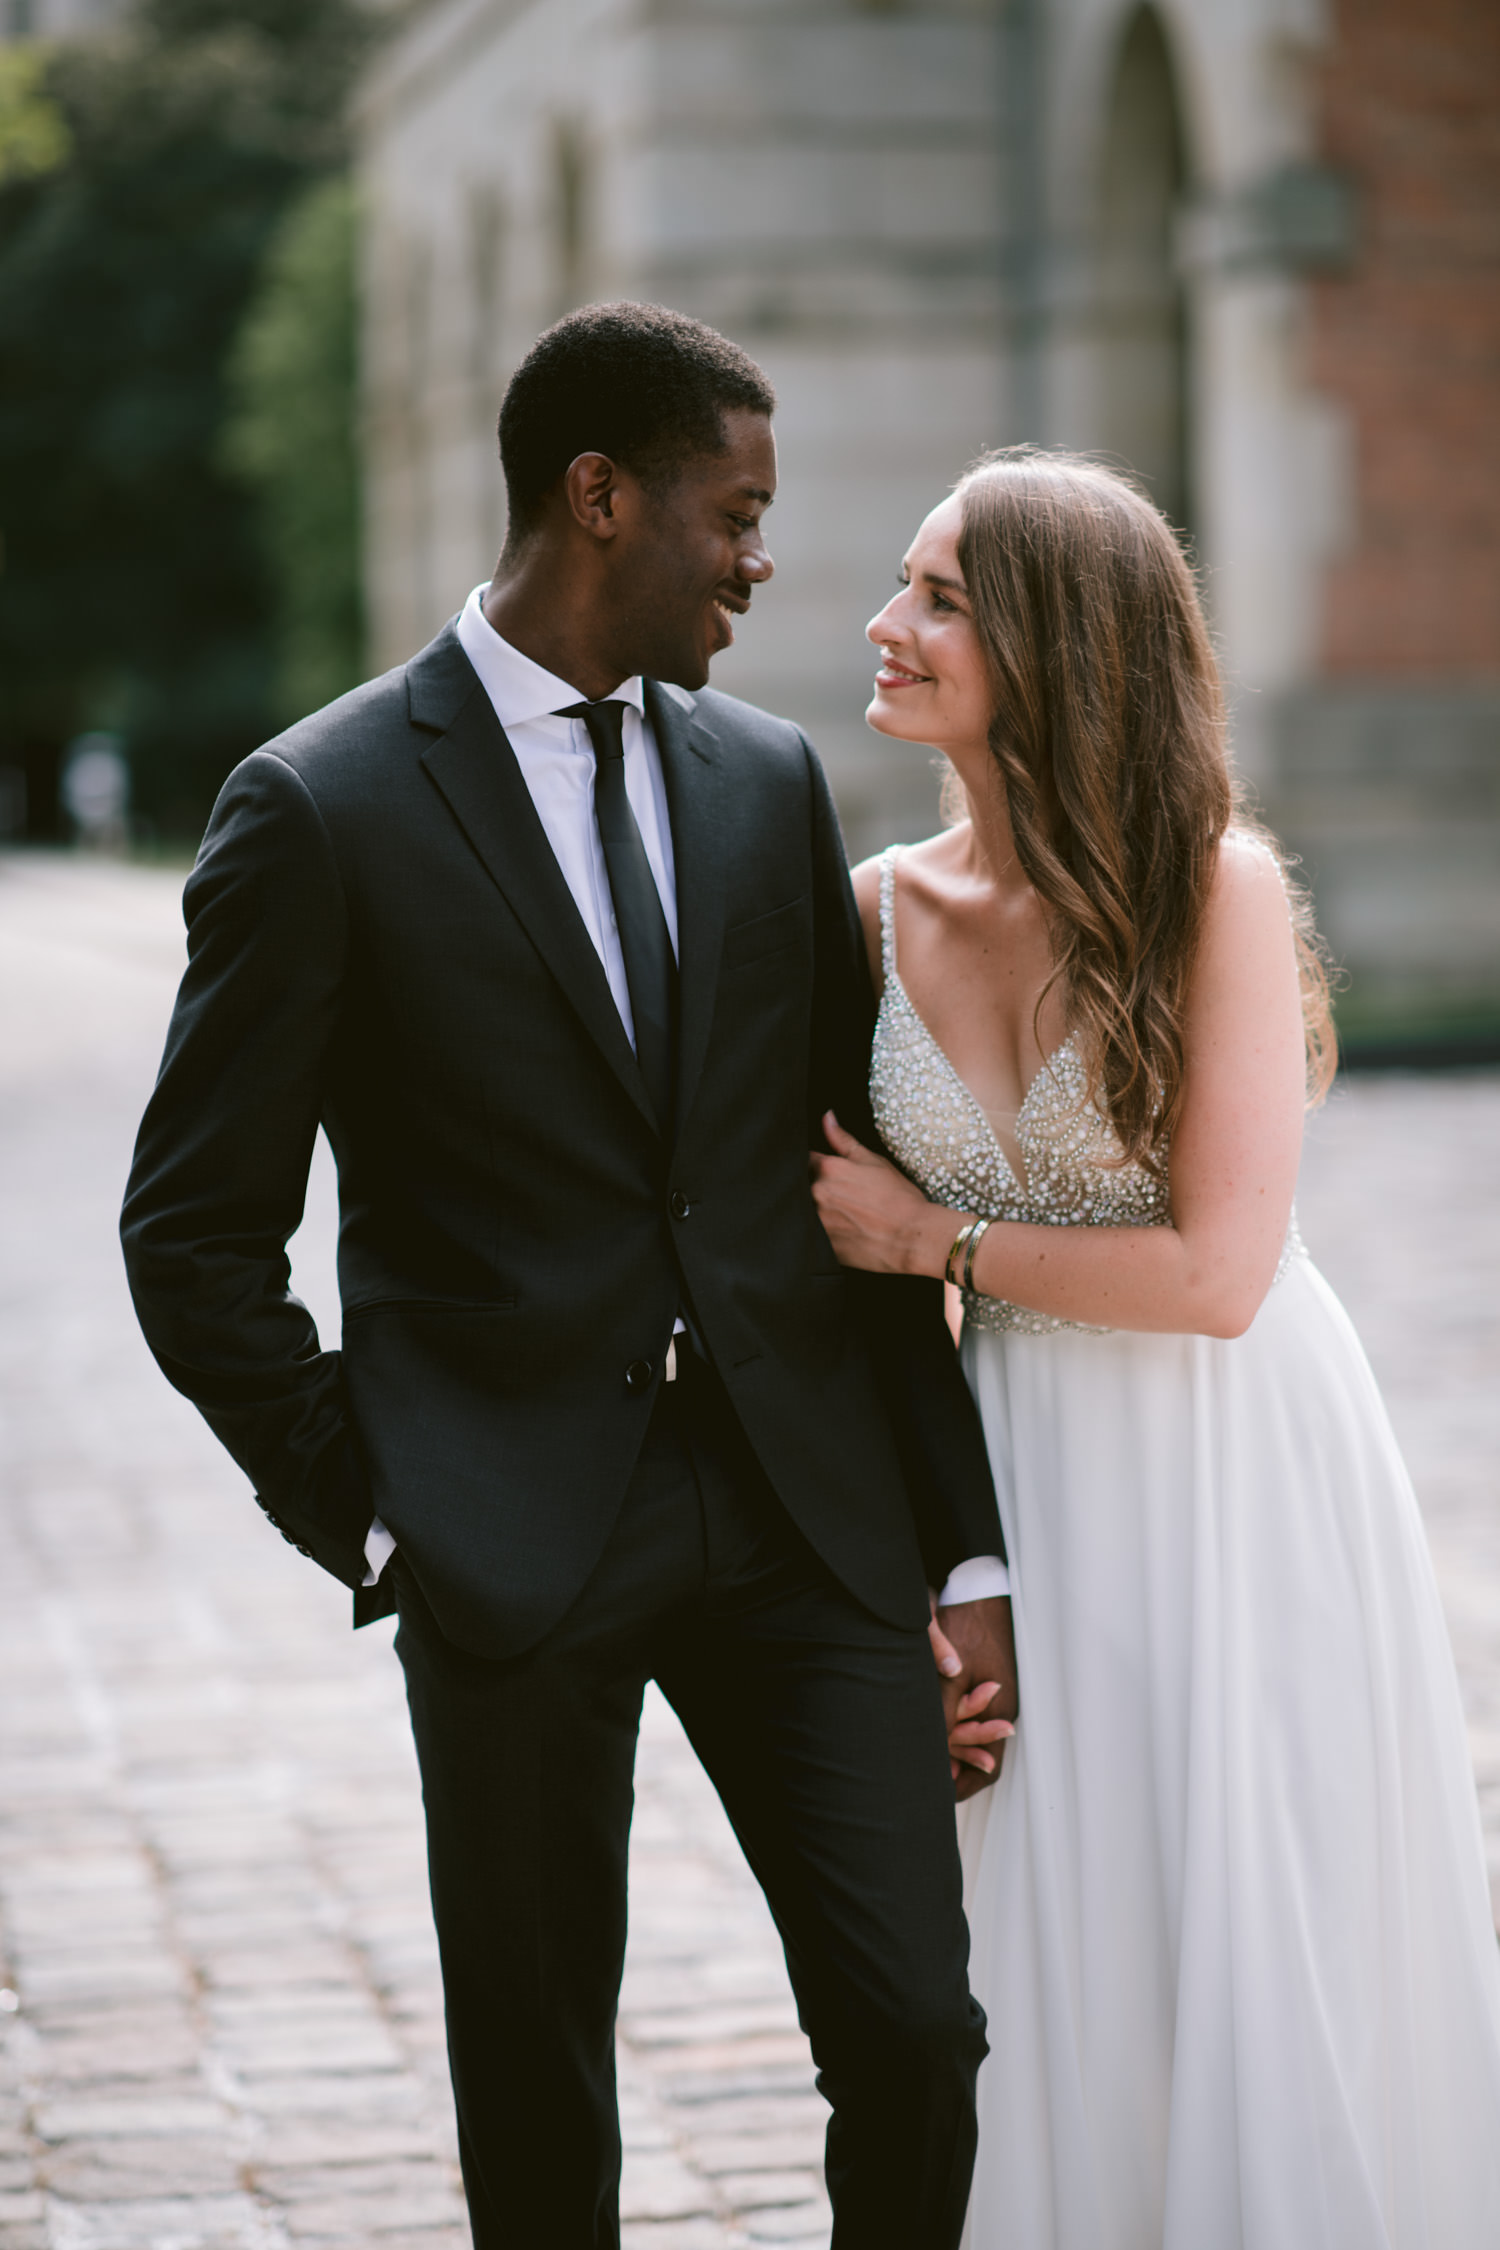 Elegant editorial wedding photography at Osgoode Hall Toronto by Eric Cheng photography